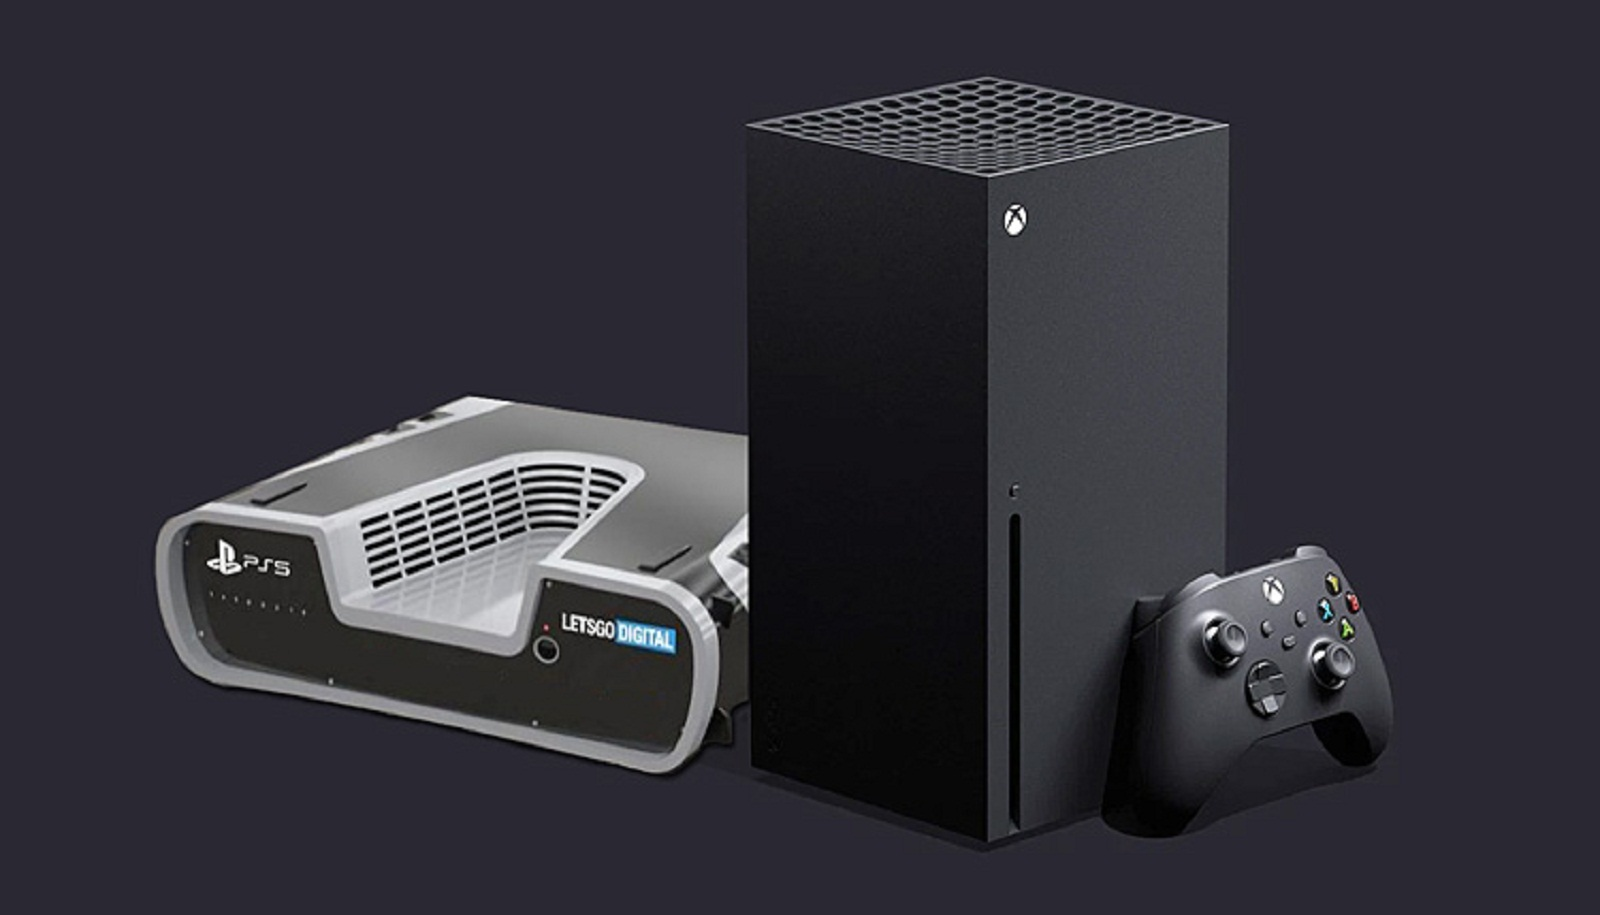 Recession Could Affect Sales Come 2021, As Next-Gen Consoles Suggested To Range From $450 to $499, Says Veteran Game Analyst